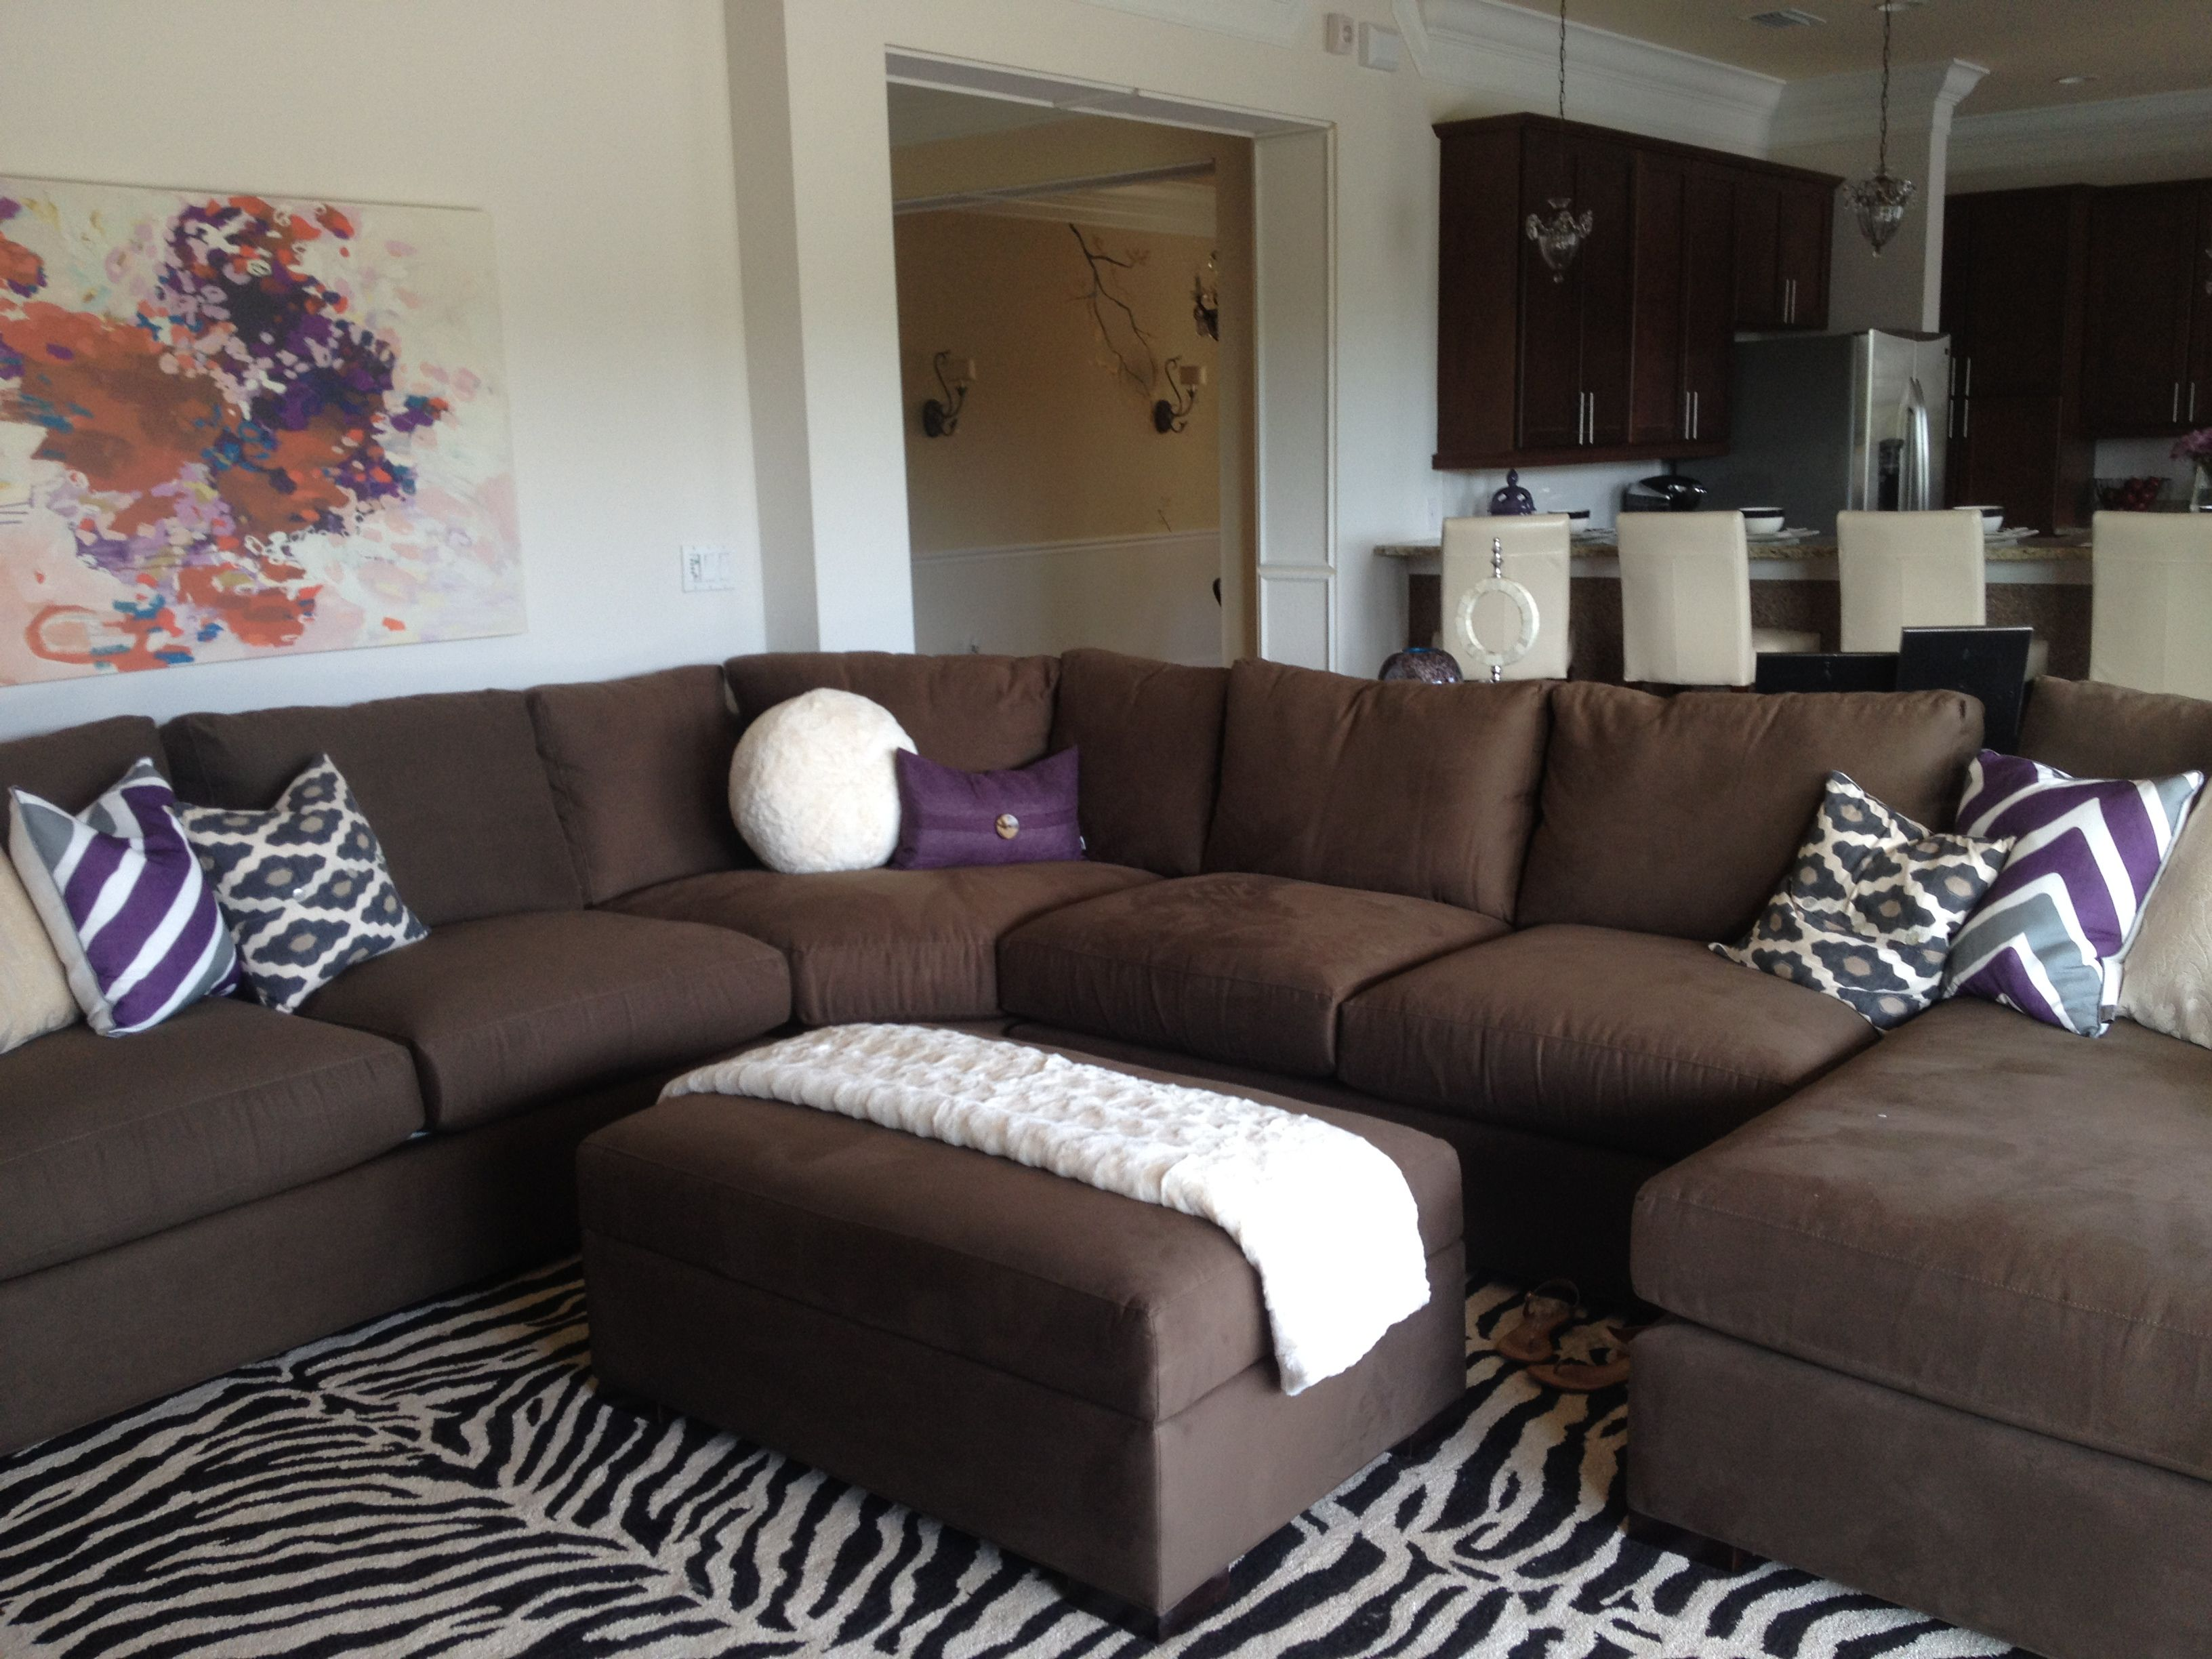 Zebra Living Room This 5th Avenue Living Room Group From Woodhaven Includes A Two